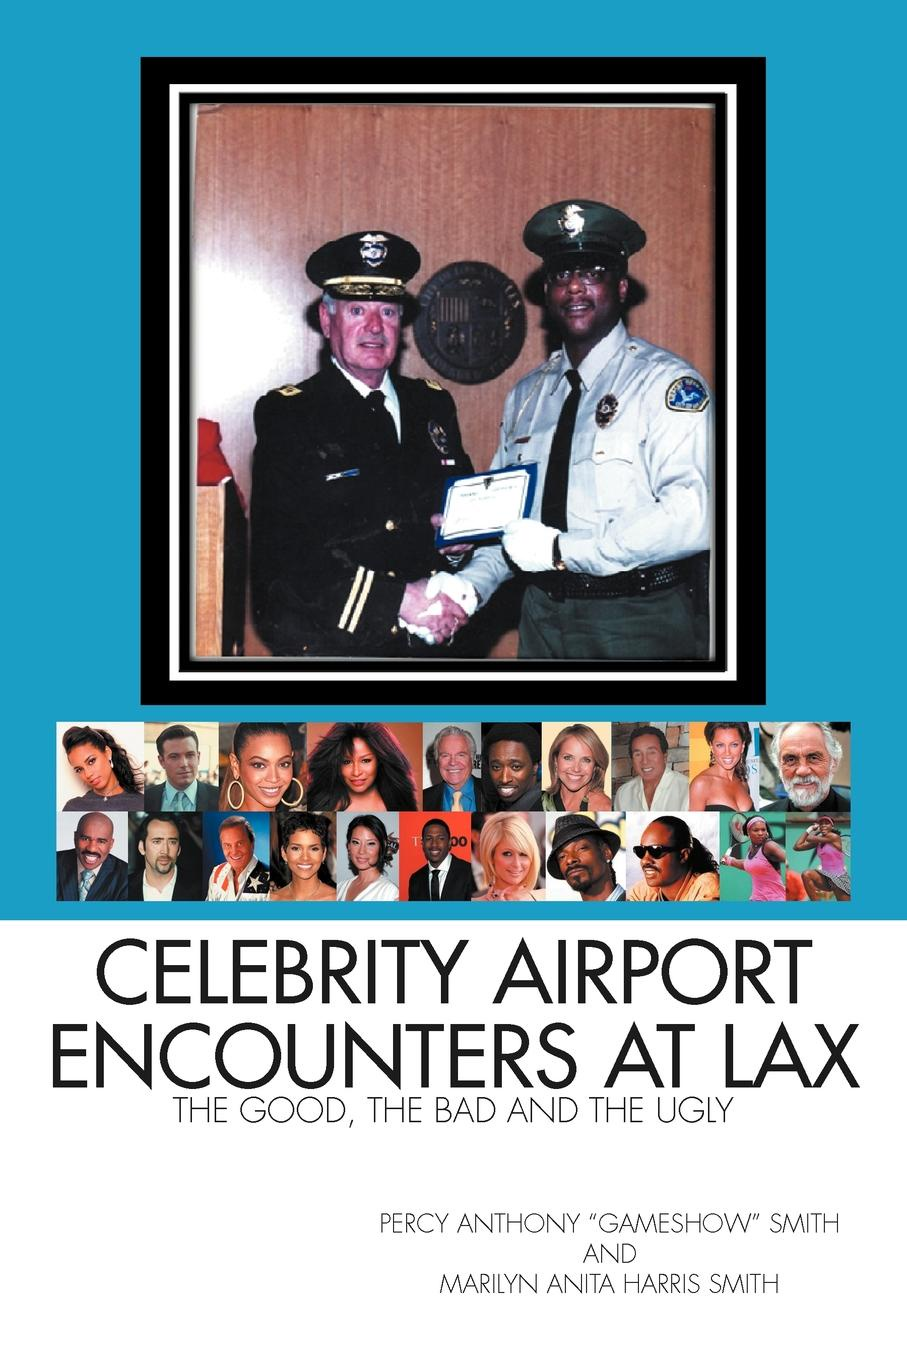 Percy, Marilyn Smith Celebrity Airport Encounters at Lax. The Good, the Bad and Ugly